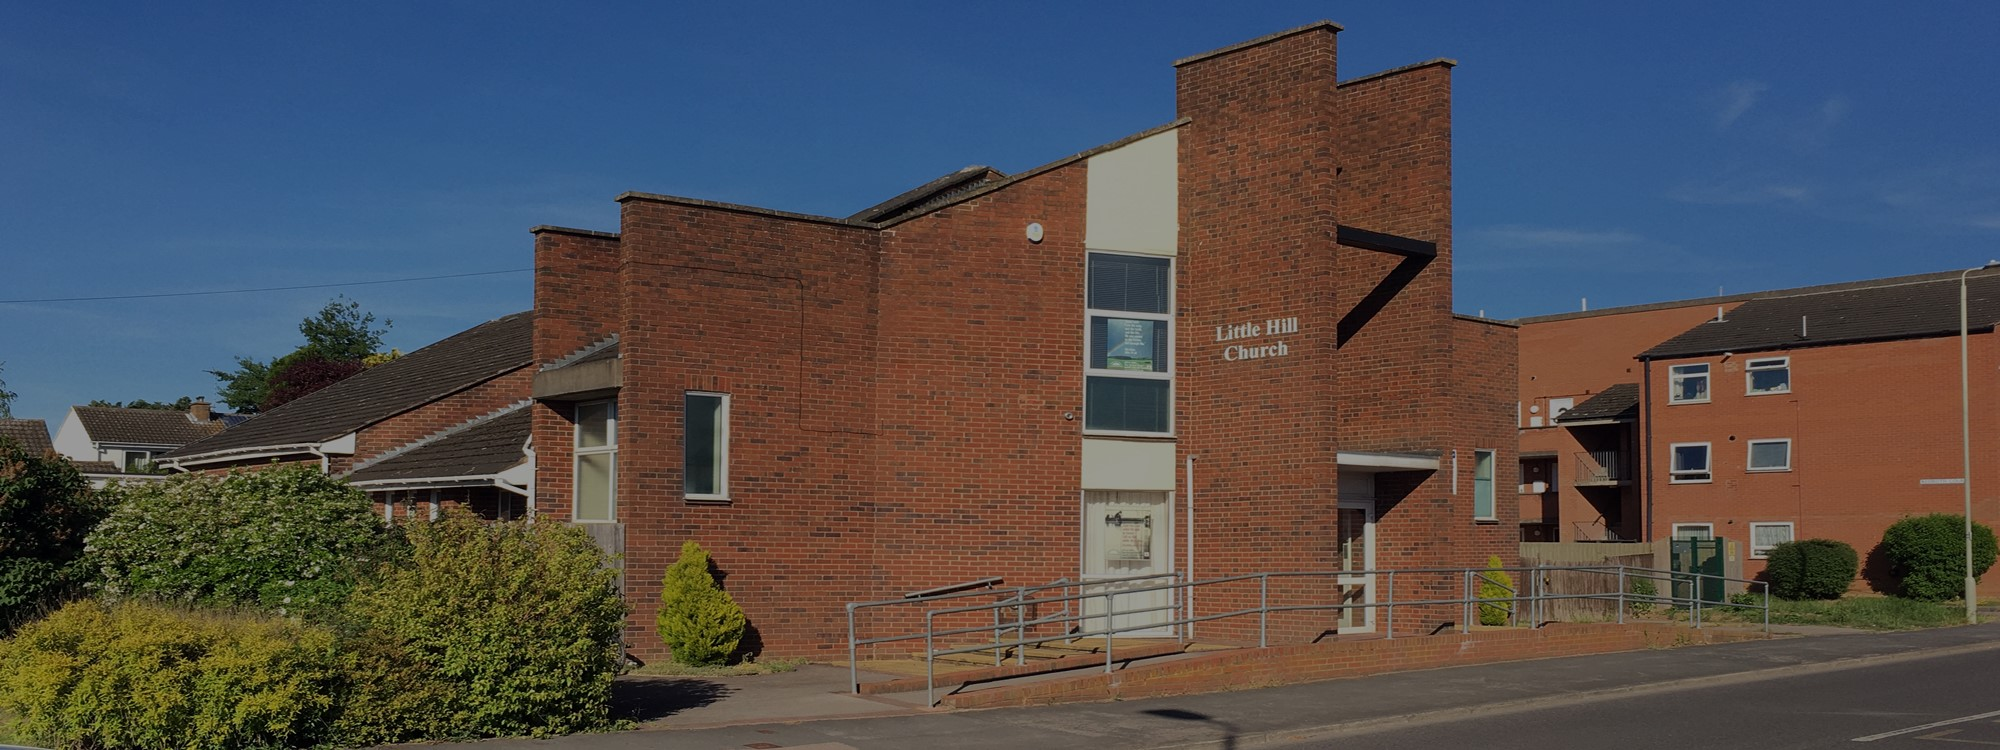 Little Hill Church*Launceston Road, Wigston, Leicester, LE18 2GZ*Weekly meetings view